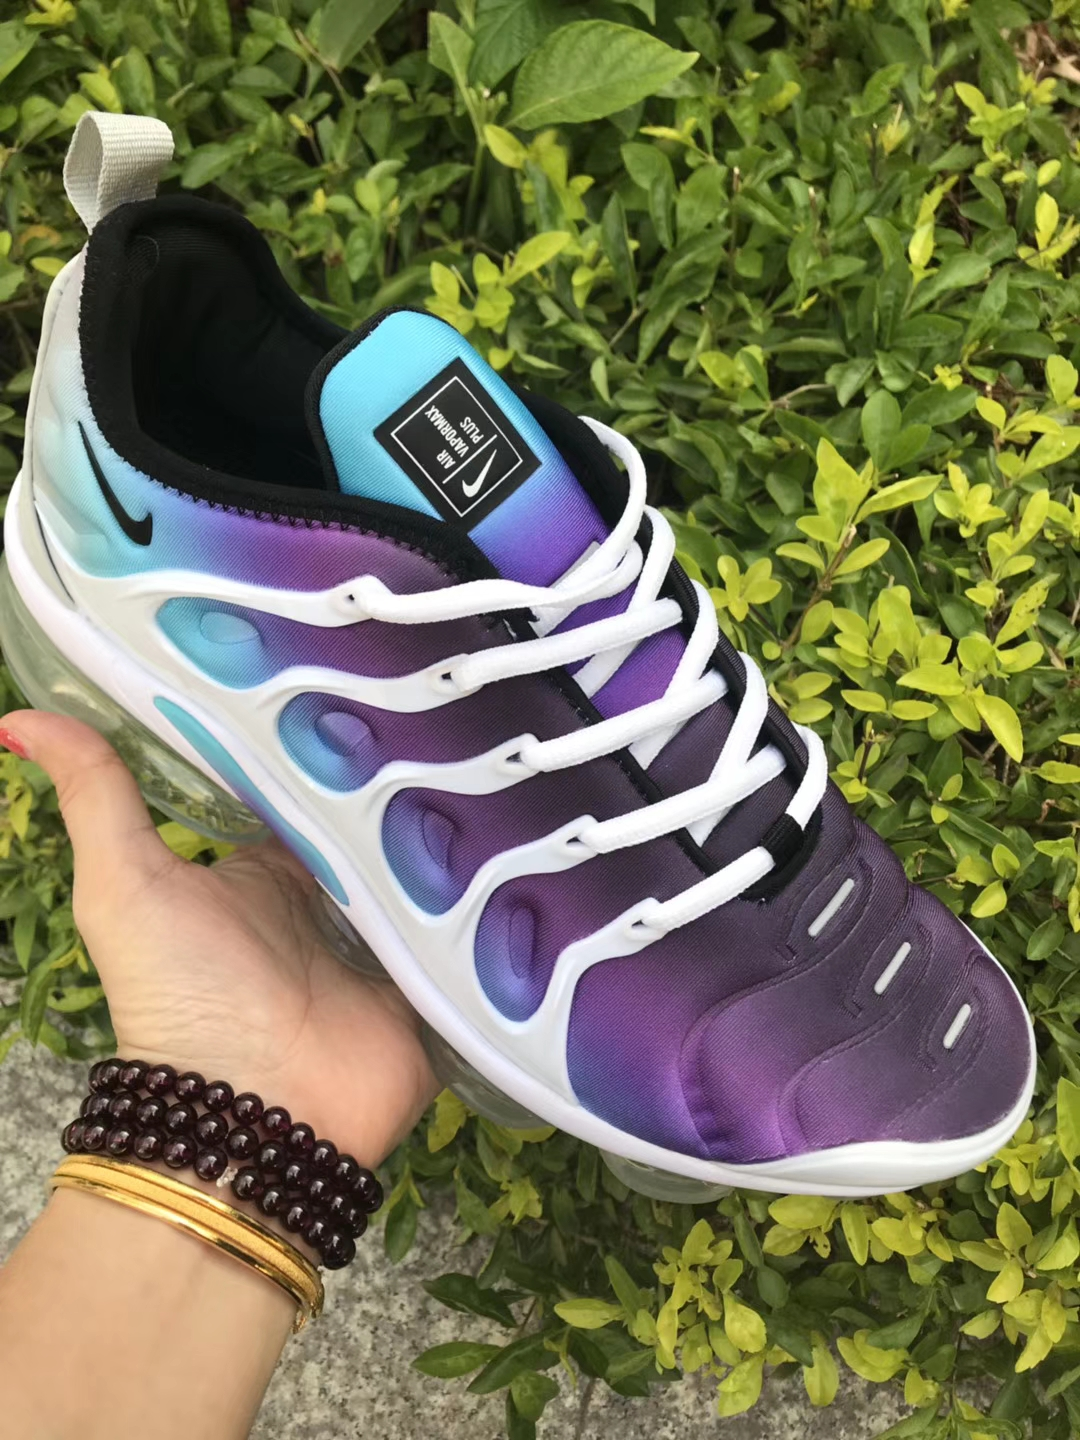 Women's Hot sale Running weapon Nike Air Max TN 2019 Shoes 002